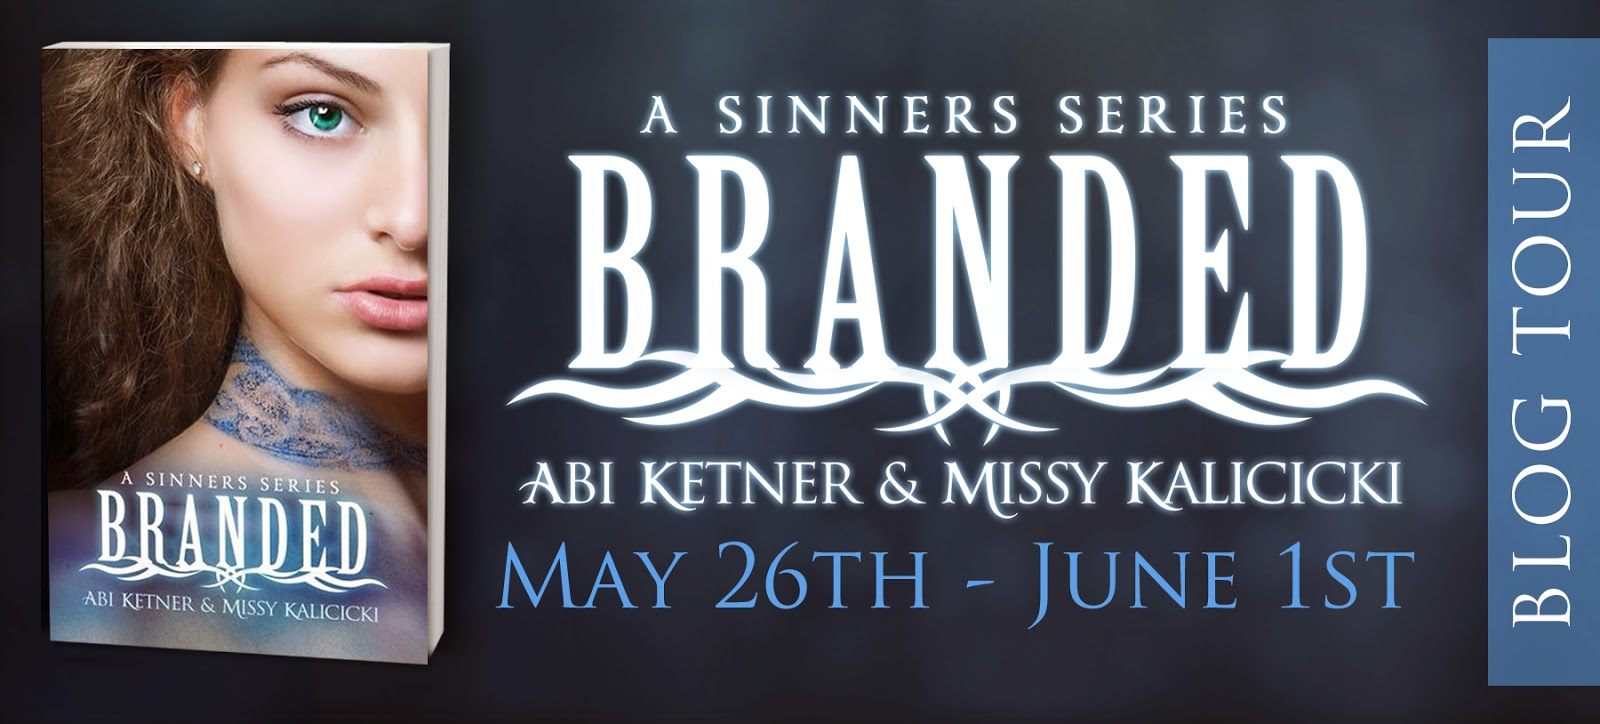 Blog Tour: Branded by Abi Ketner & Missy Kalicicki